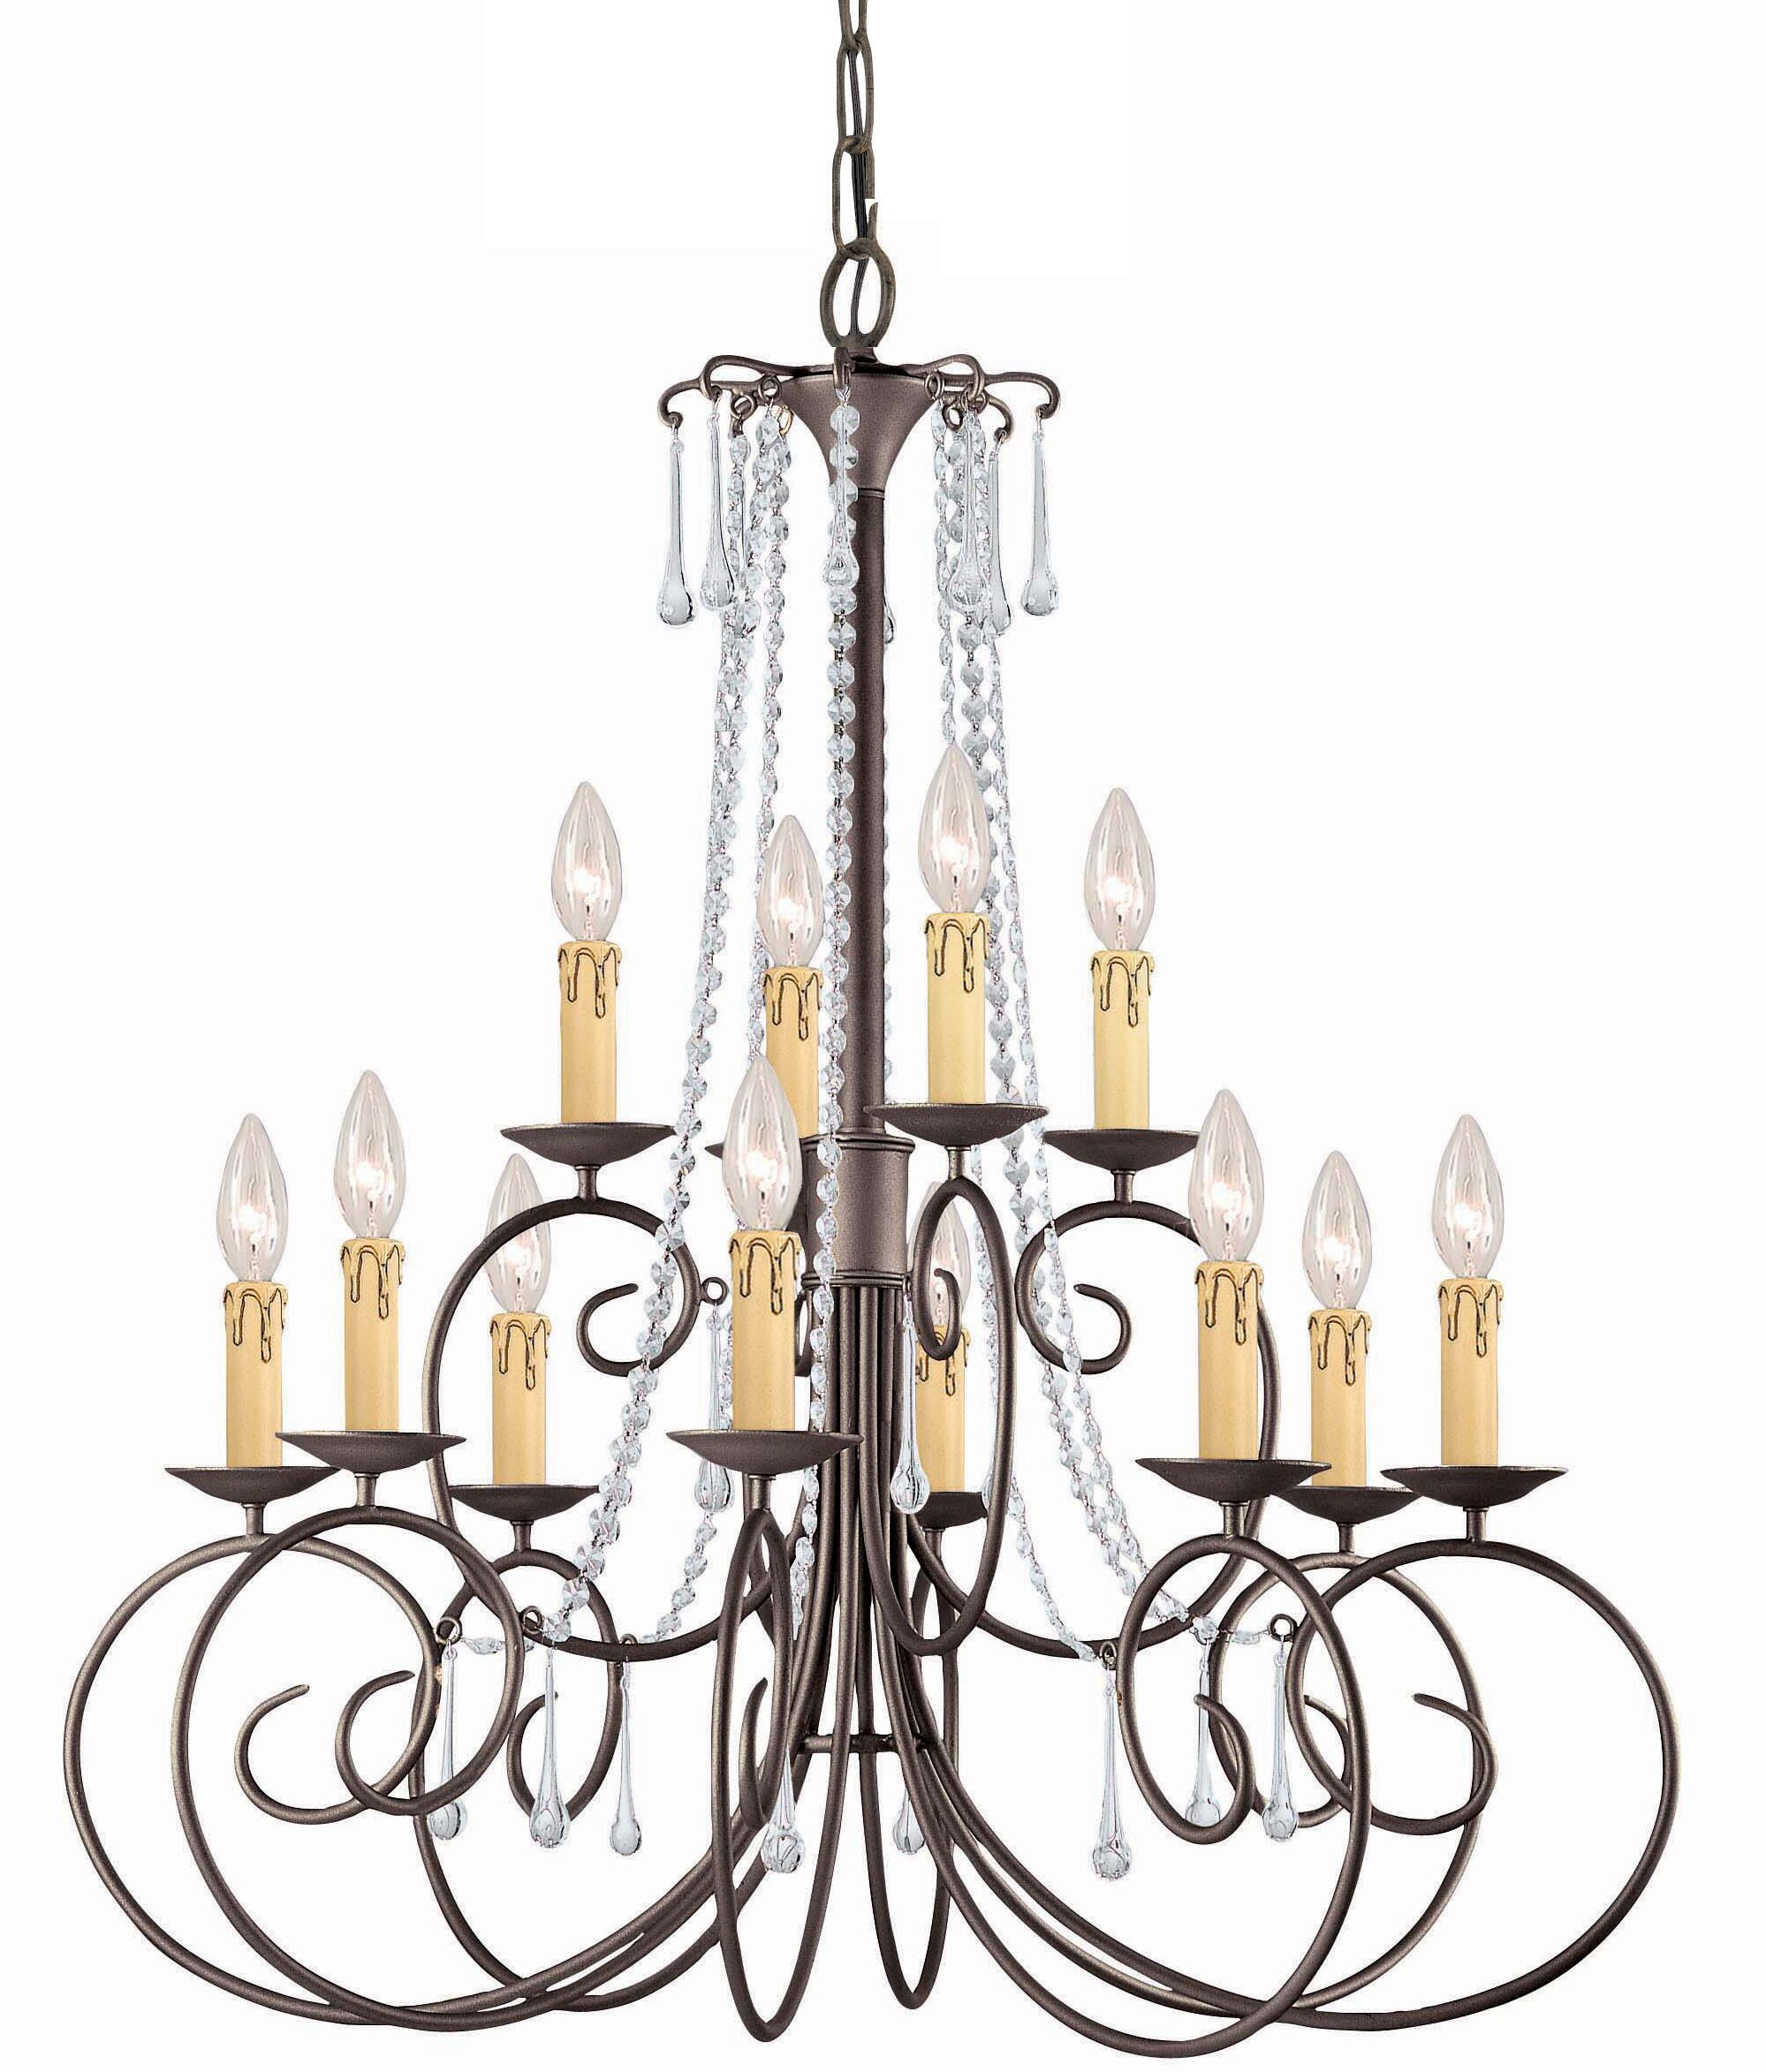 Features: -Fixture Design: Candle Style.-Number of Lights: 12.-Number of Tiers: 2.-Finish: Dark rust.-Style: Traditional.-Shade Included: No -Shade Color: .-Shade Material: ..-Primary Material: Metal.-Dry, Damp or Wet Location Listed: Dry.-Bulb Includ...